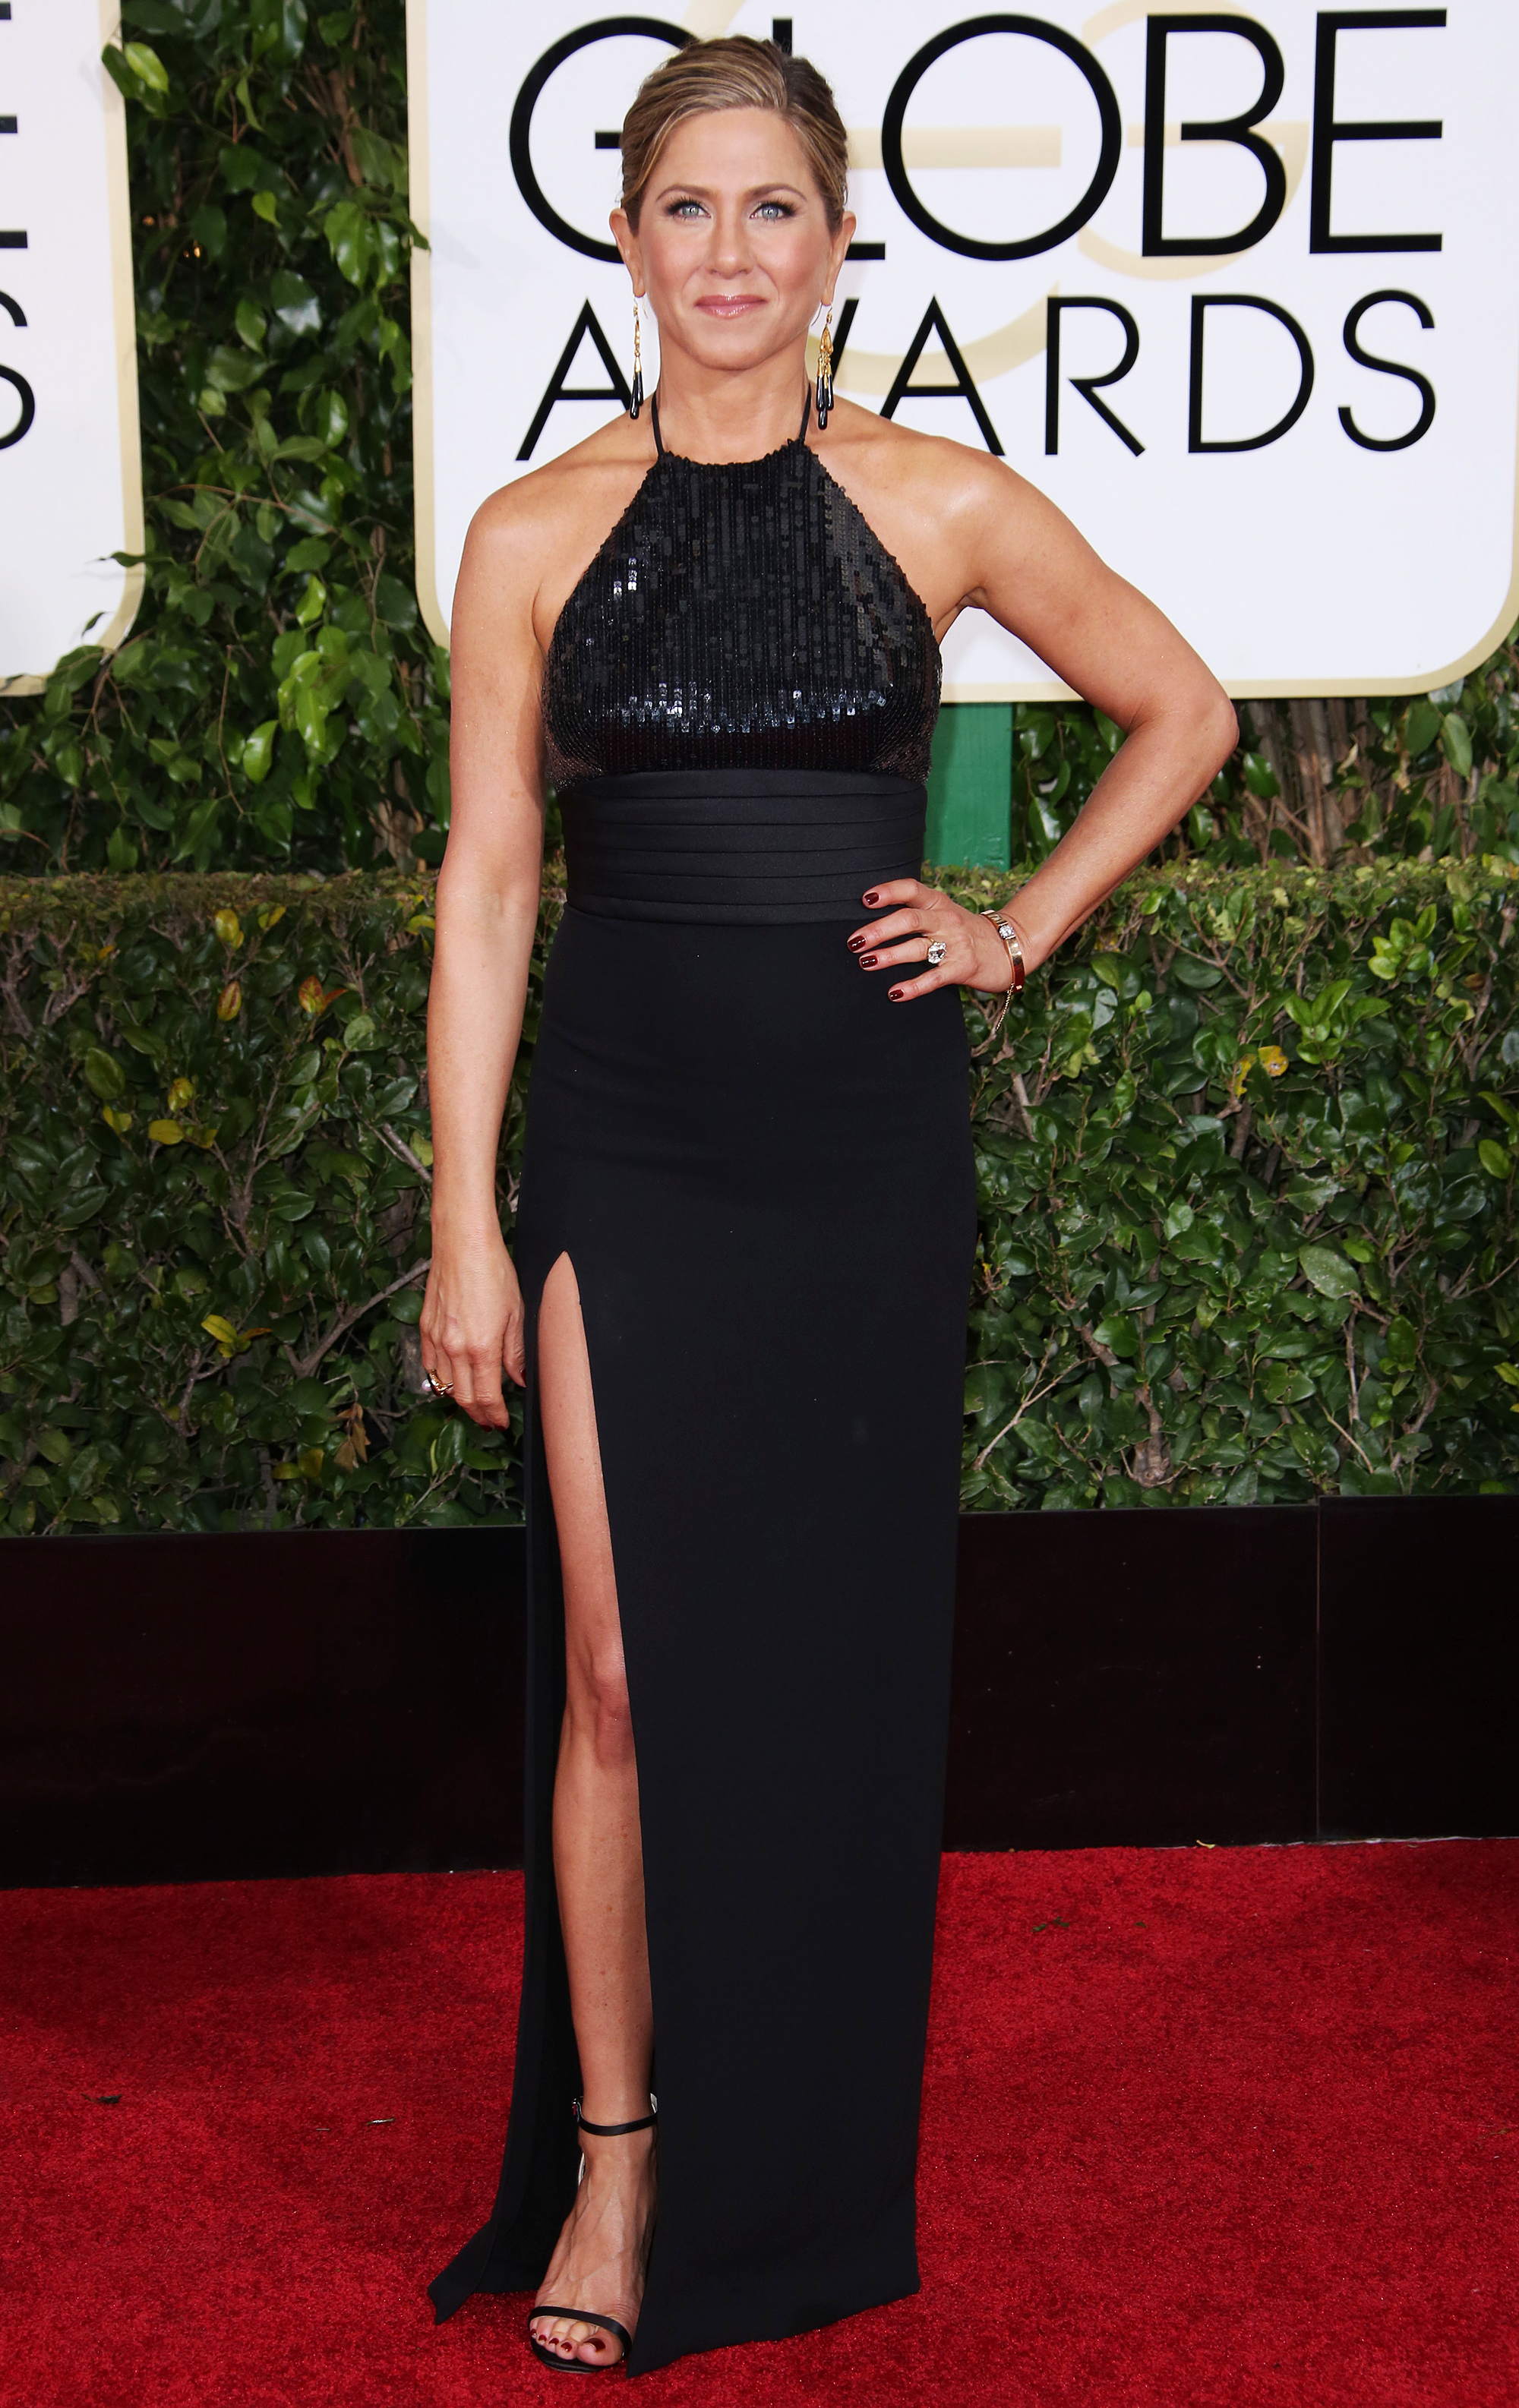 Proof that Jennifer Aniston always wears black at Golden Globes: pictures